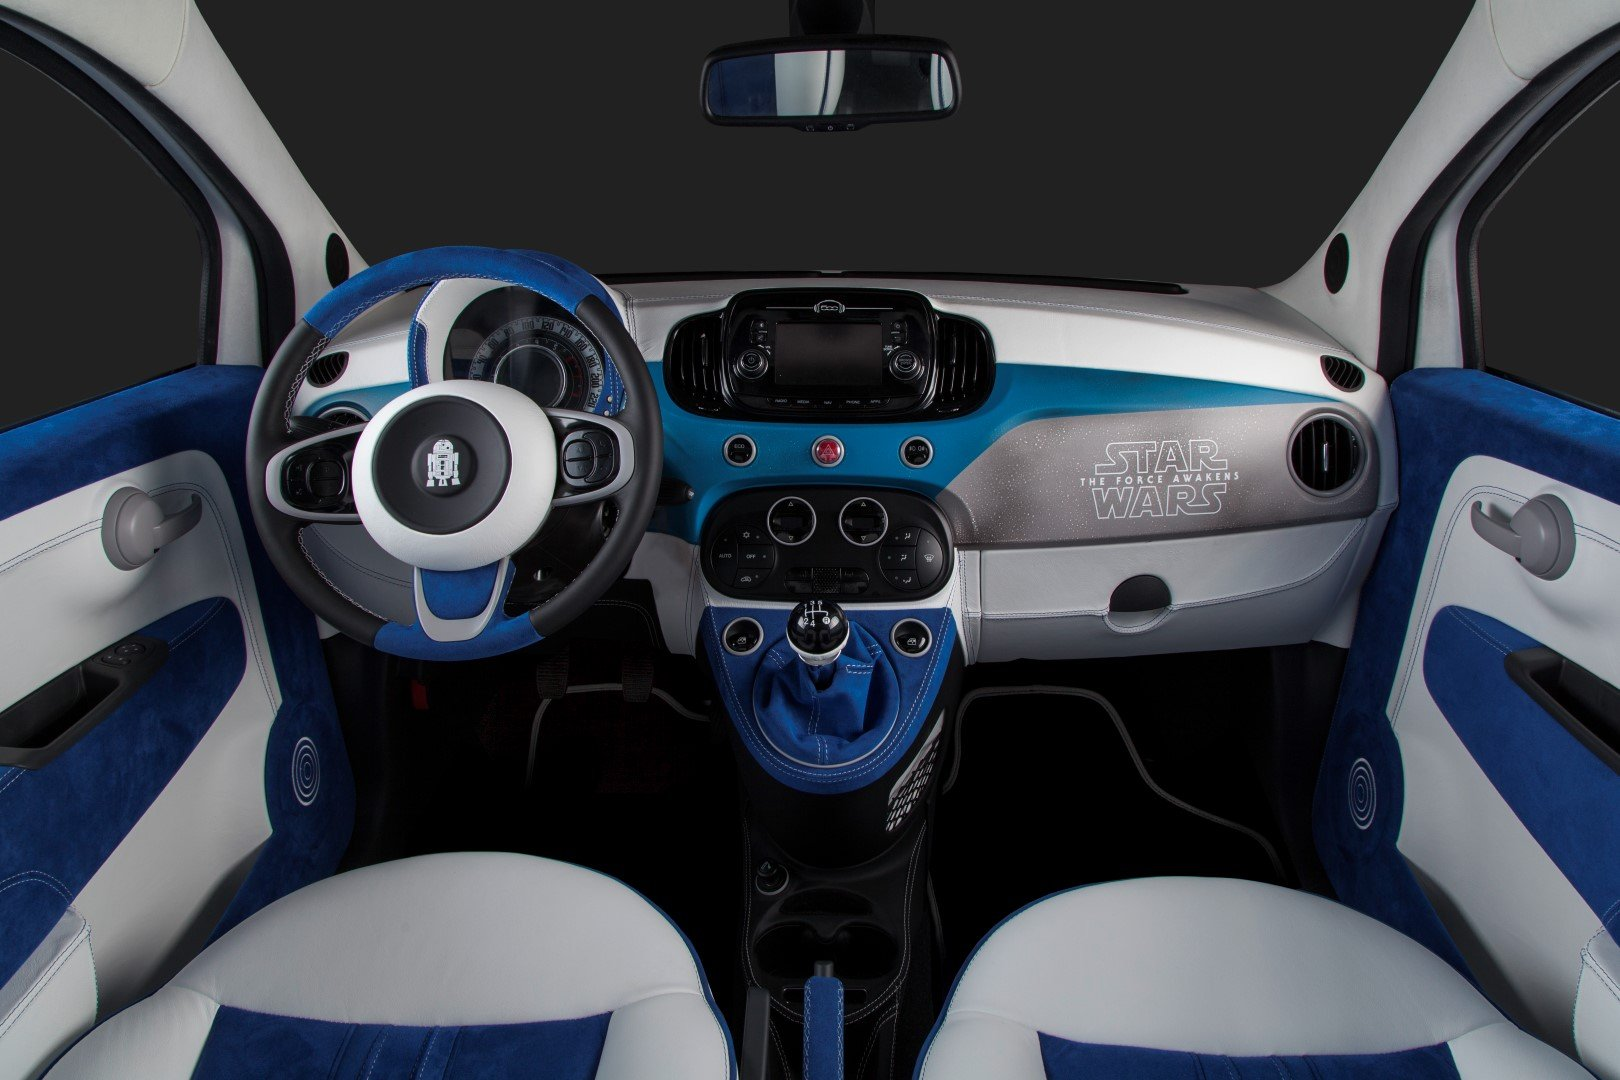 garage italia customs celebrates star wars the force awakens with custom fiat 500 wraps. Black Bedroom Furniture Sets. Home Design Ideas